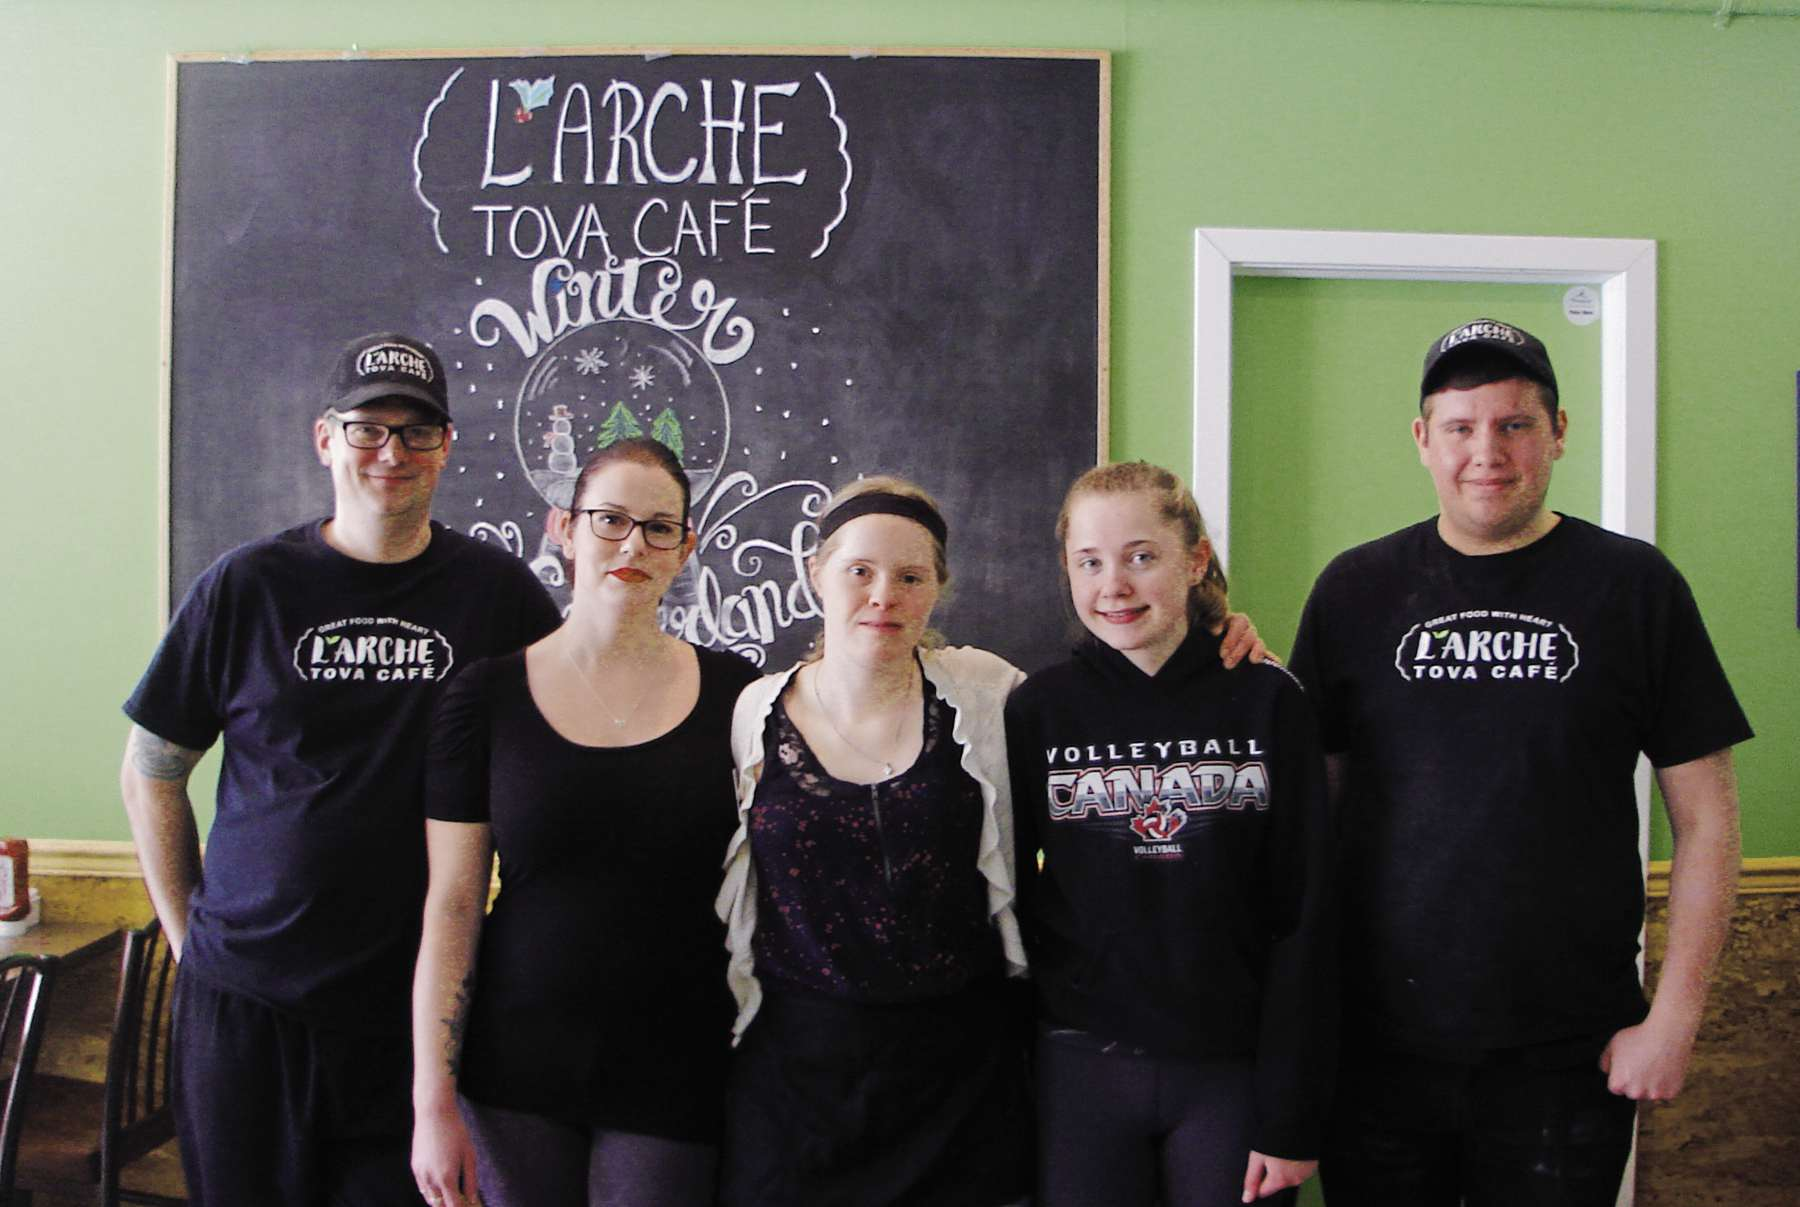 Rob, Carley, Stacey, Sara and Nolan are staff members at L'Arche Tova Café.